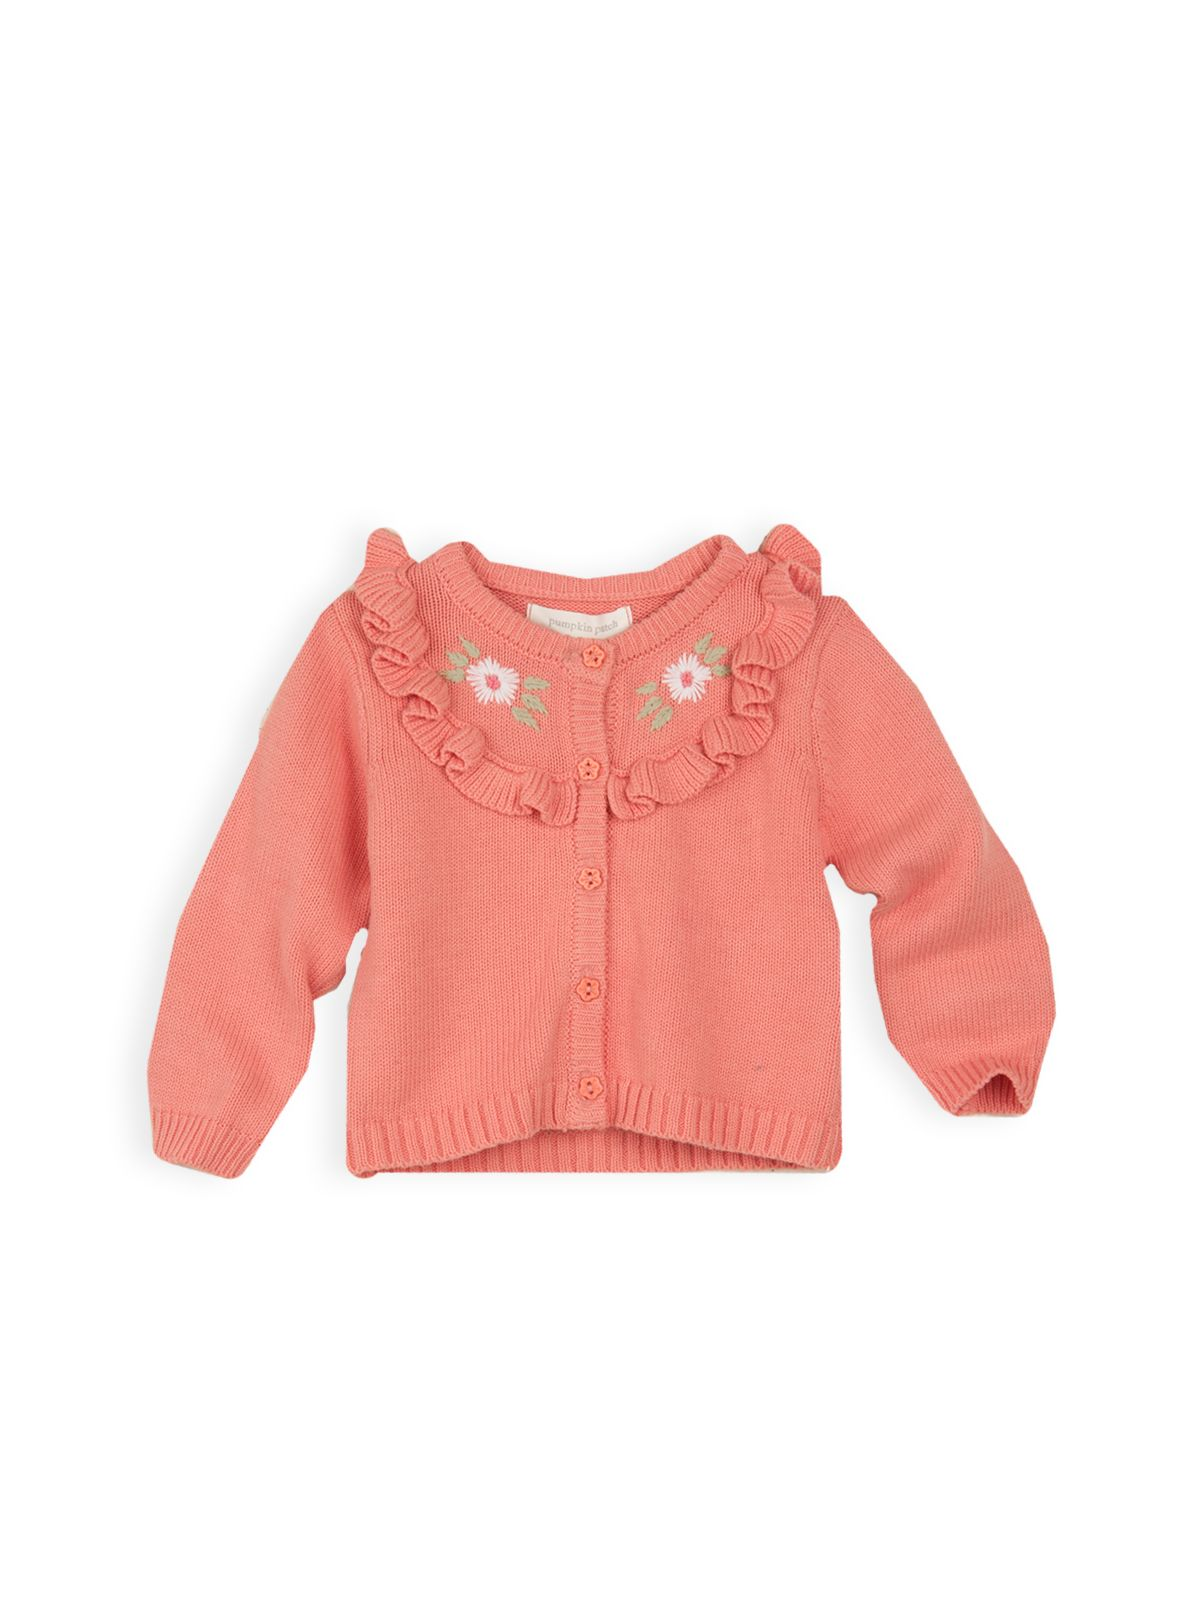 Girls yoked knit cardigan